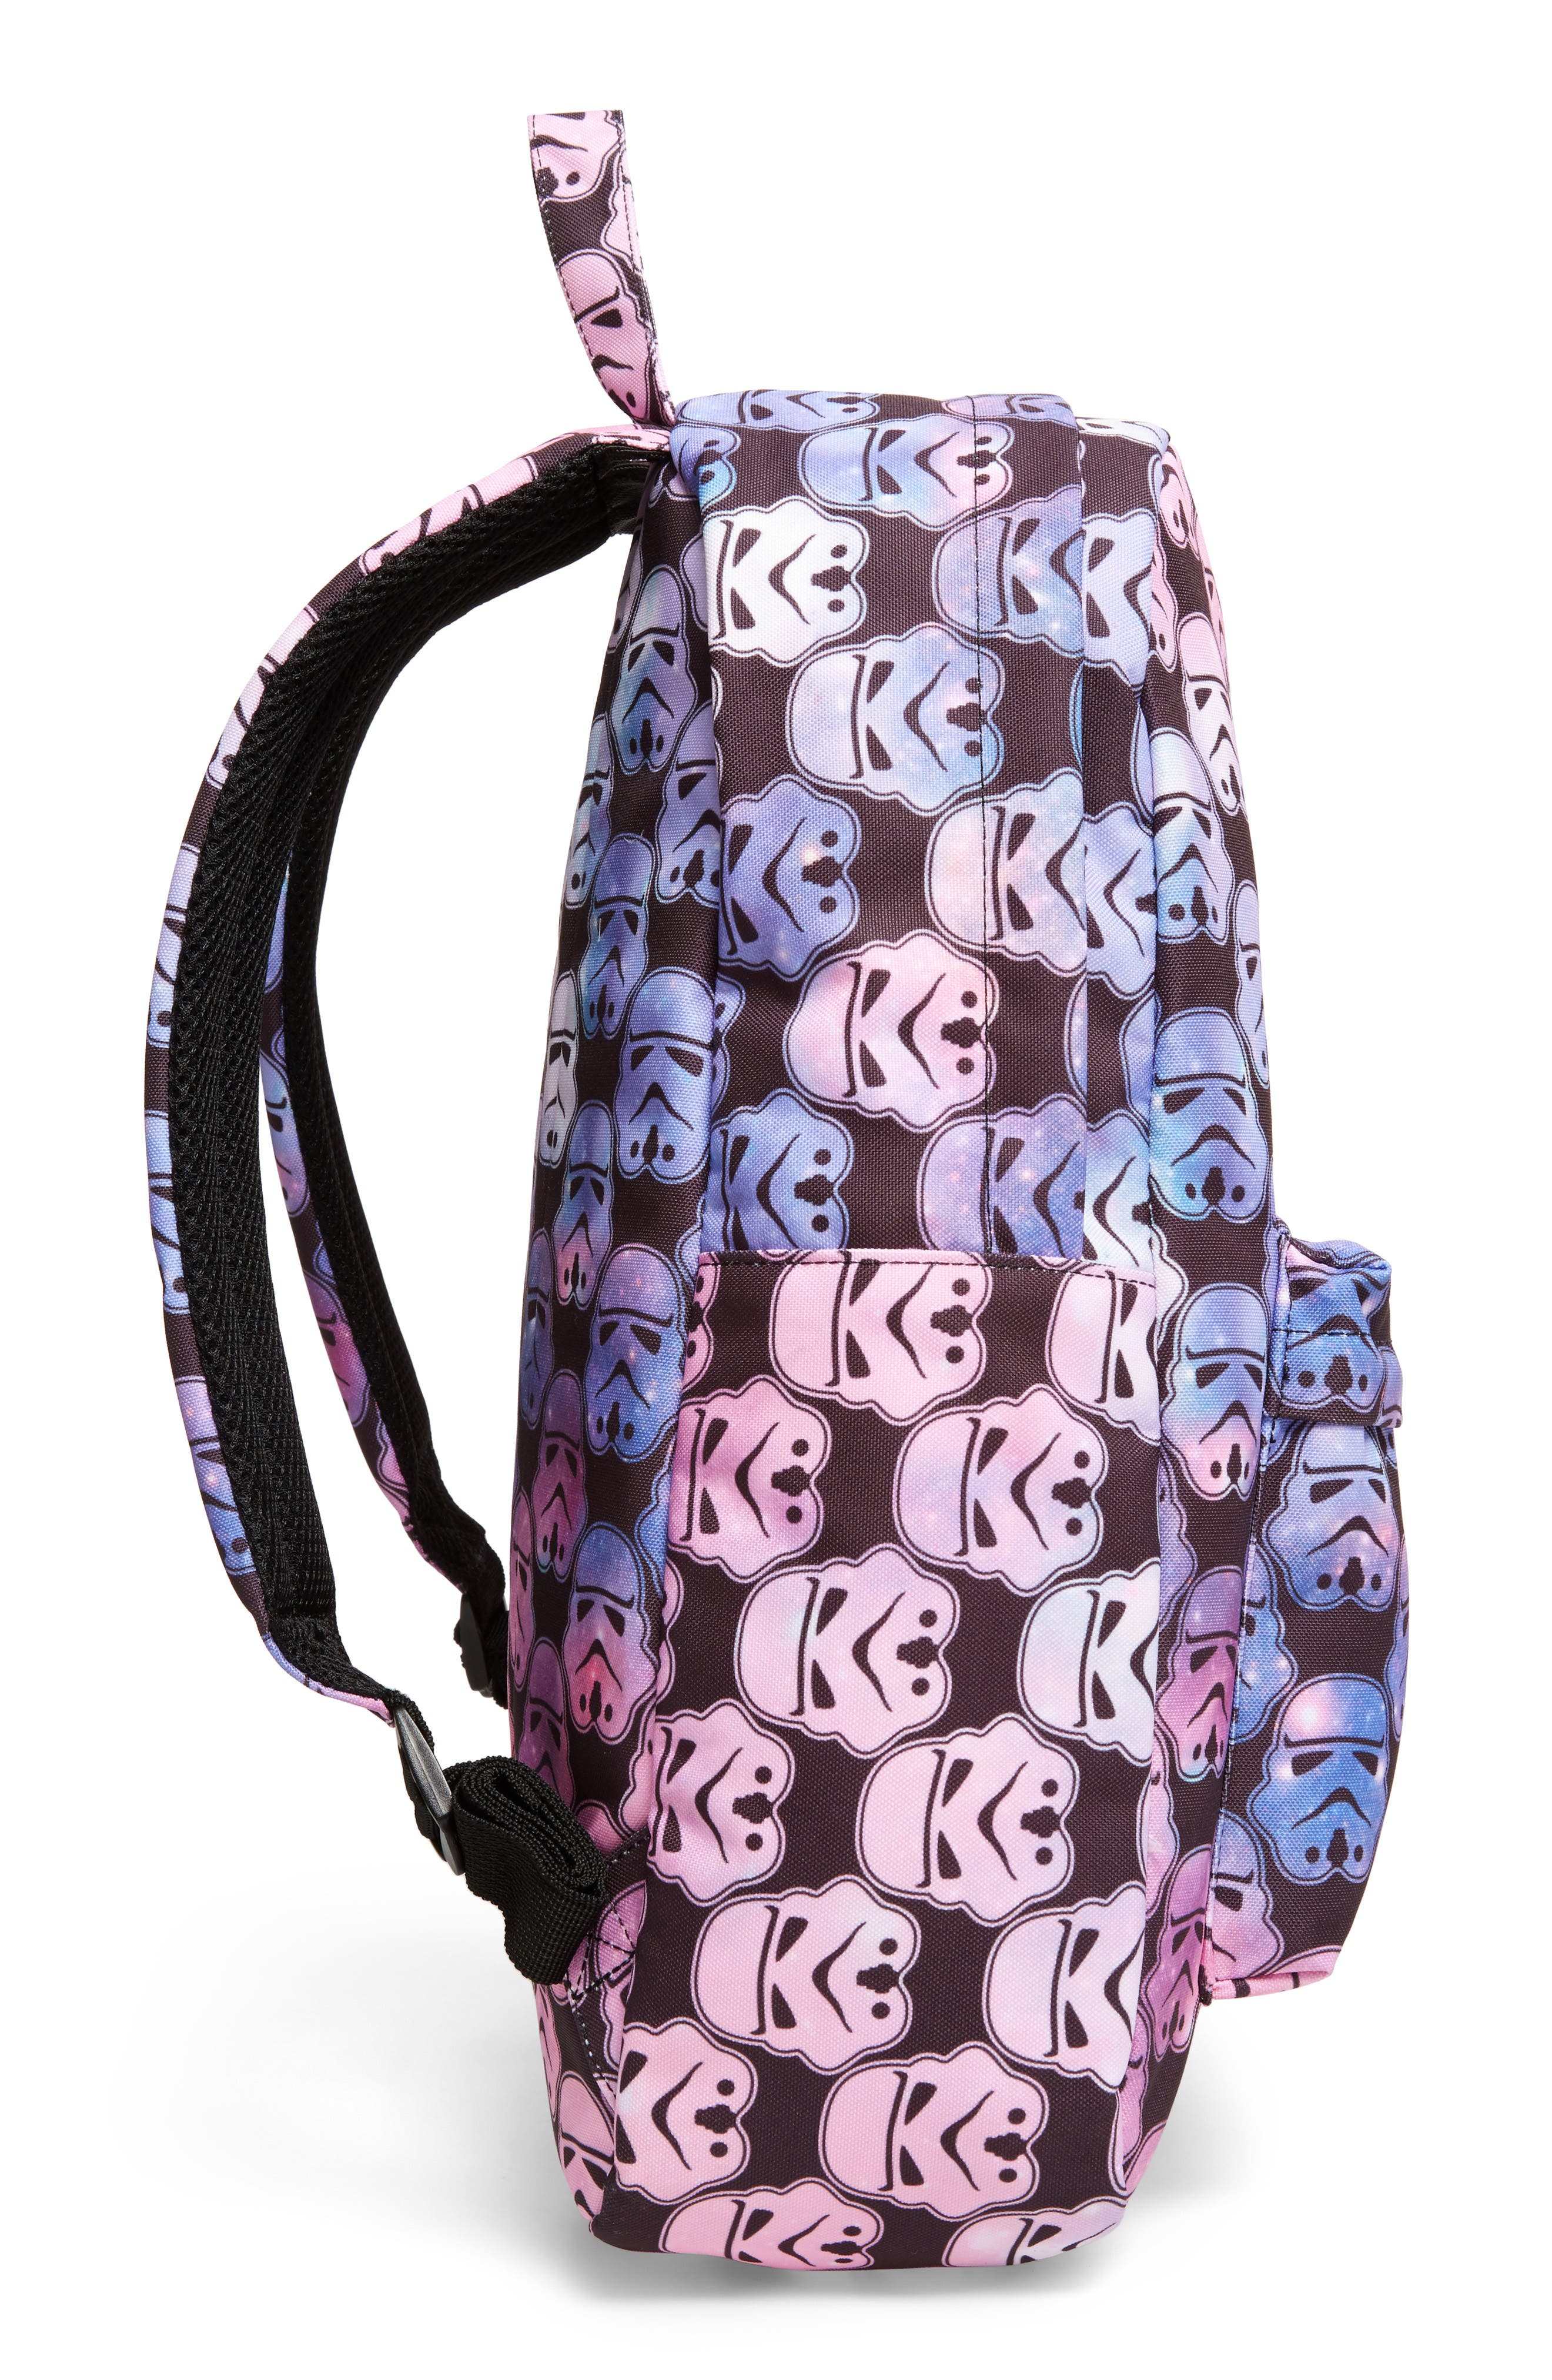 Star Wars<sup>™</sup> Stormtrooper Galaxy Backpack,                             Alternate thumbnail 4, color,                             001